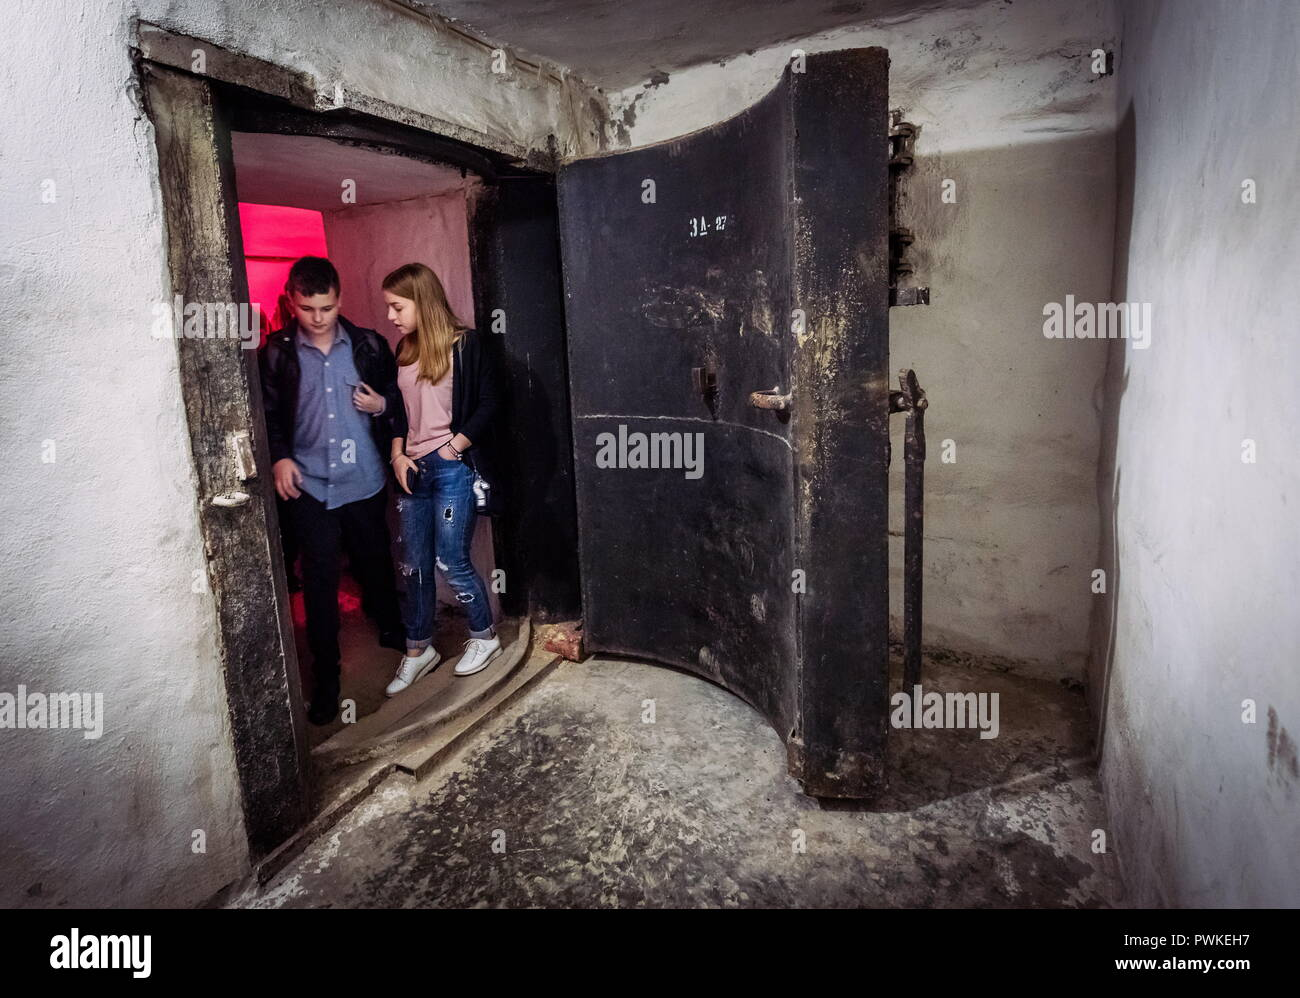 CRIMEA, RUSSIA - OCTOBER 16, 2018: People attend an excursion at the 'Underground Sevastopol' museum based at a functioning nuclear bunker under Sevastopol's city centre. The bunker rates first-class and is optimized for sheltering up to 1.000 people; it was built in 1952 but has never been used since. In case of emergency, the bunker can be prepared to shelter people in 12 hours. The nuclear bunker is part of an underground system of atomic shelters which can host the city's residents and authorities, as well as several plants and schools, in case of a nuclear attack. Sergei Malgavko/TASS - Stock Image